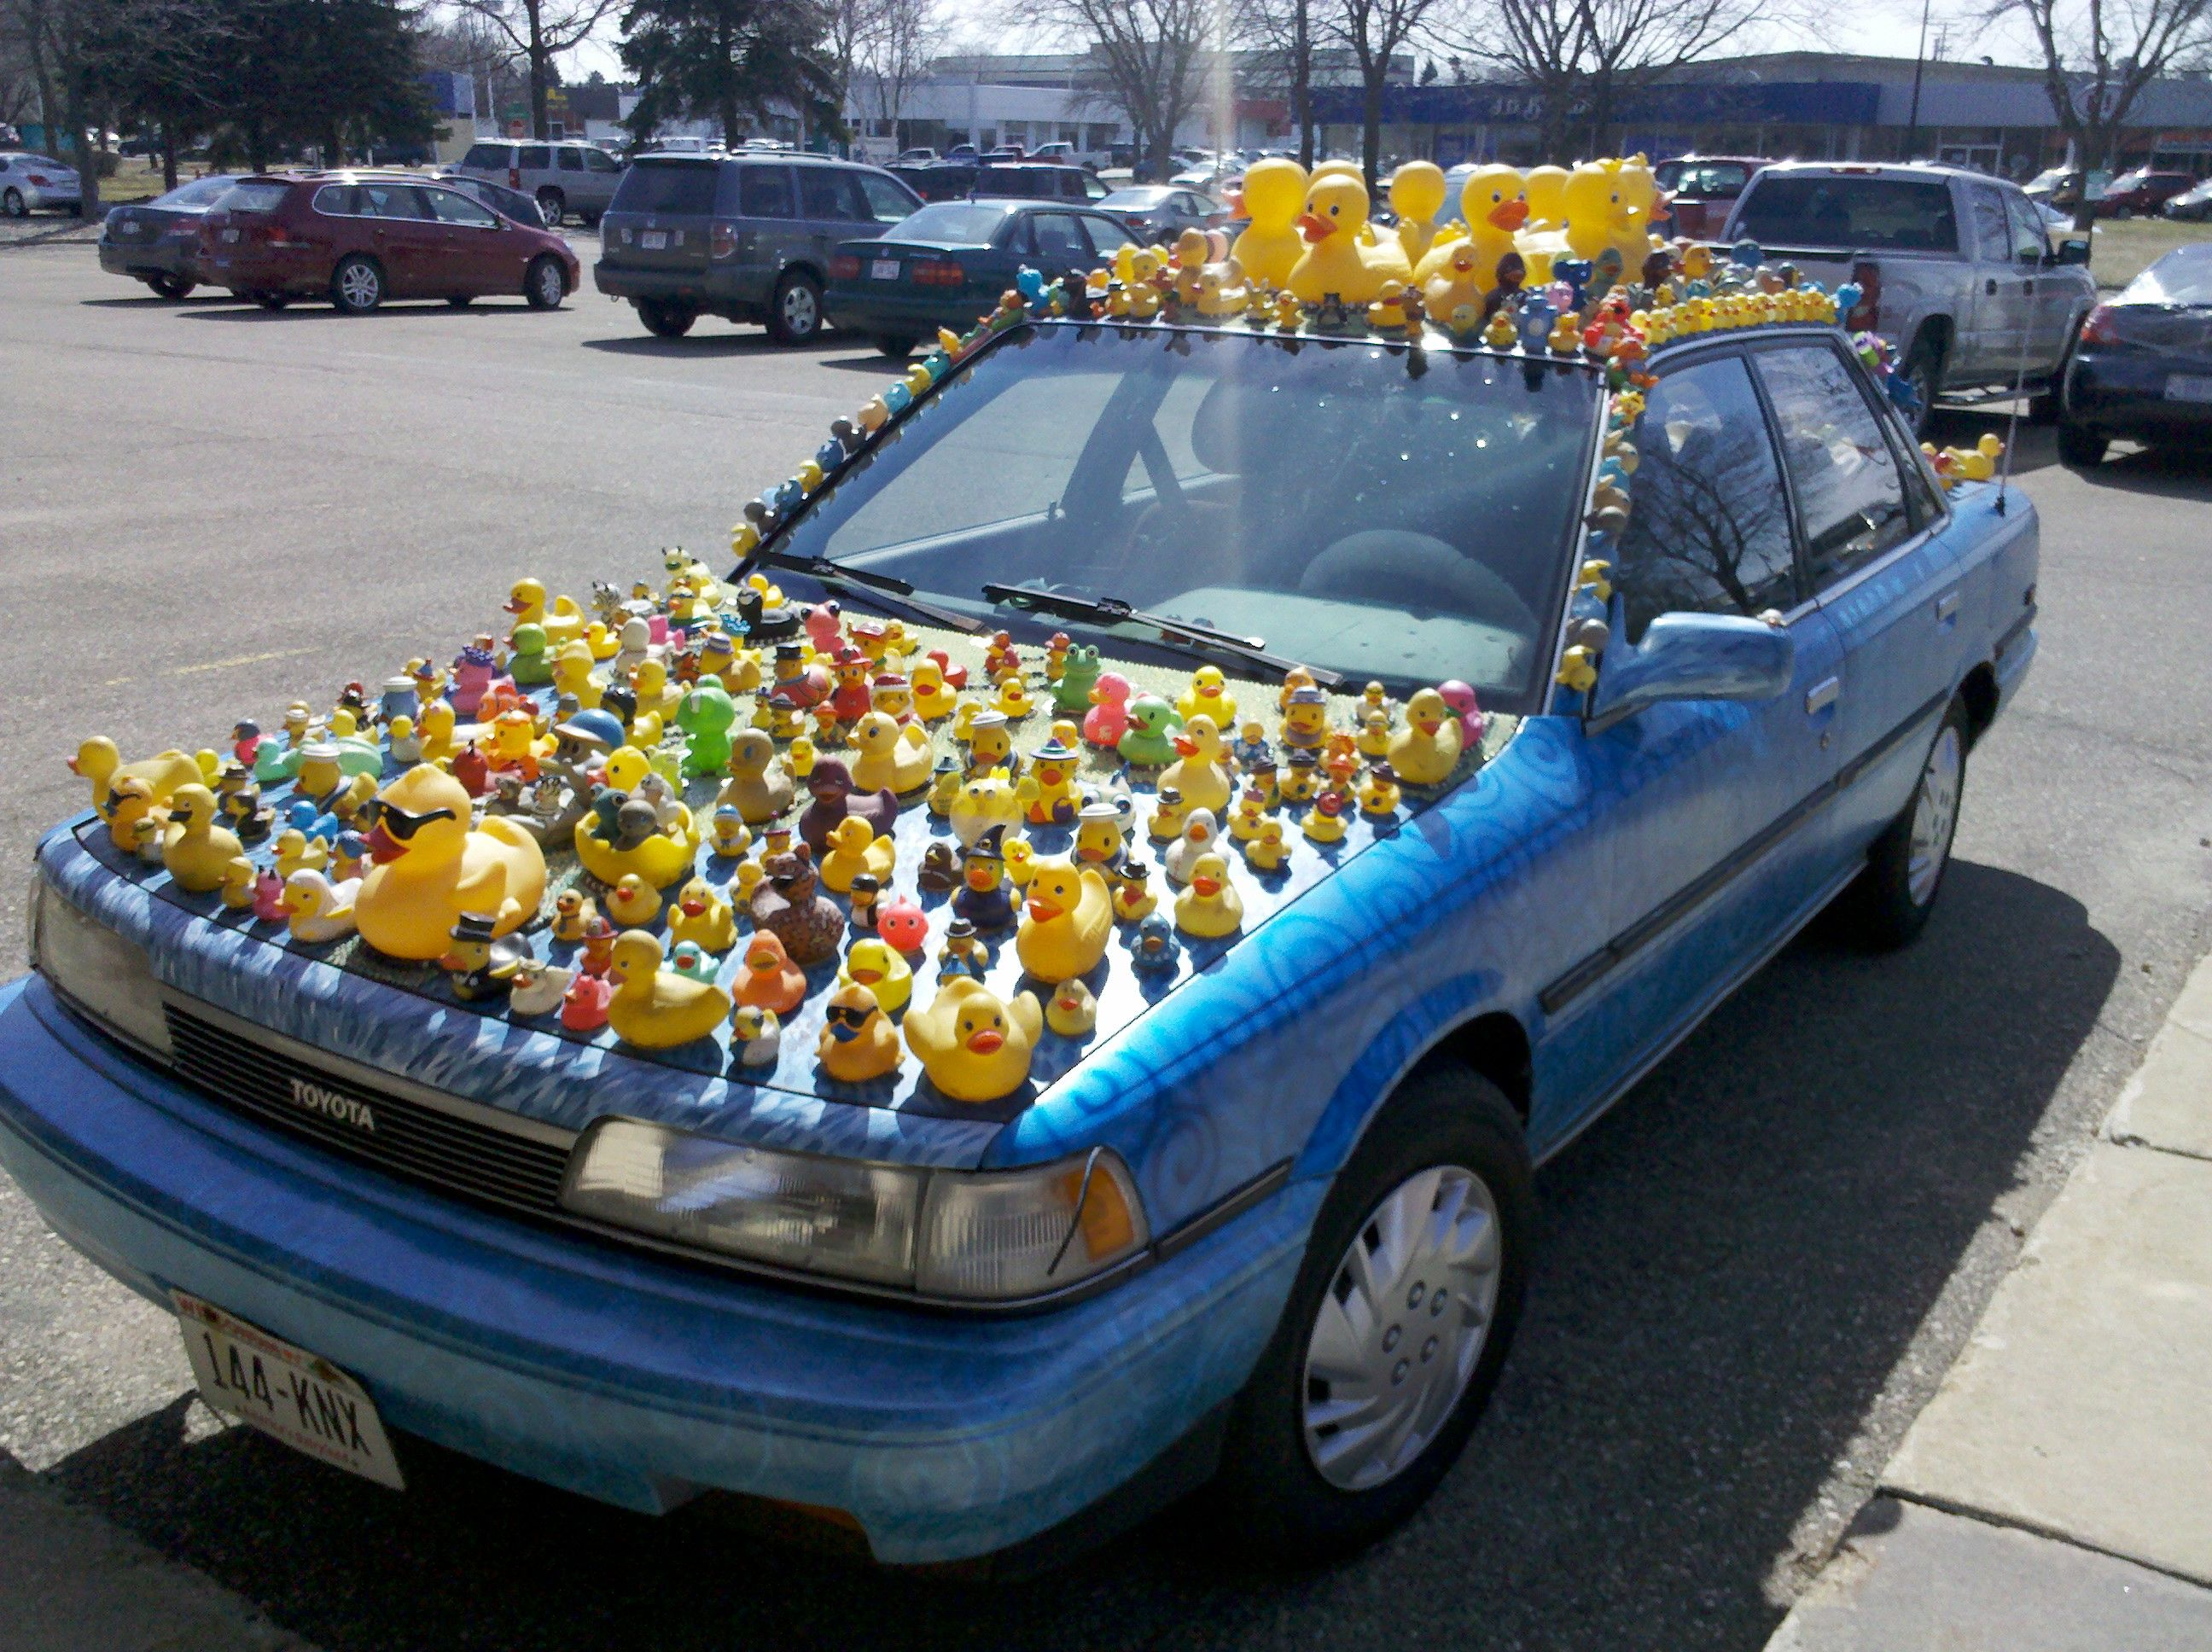 Used Cars Madison Wi >> Rubber Duckie Car Madison Wi Car Car Mods Used Cars